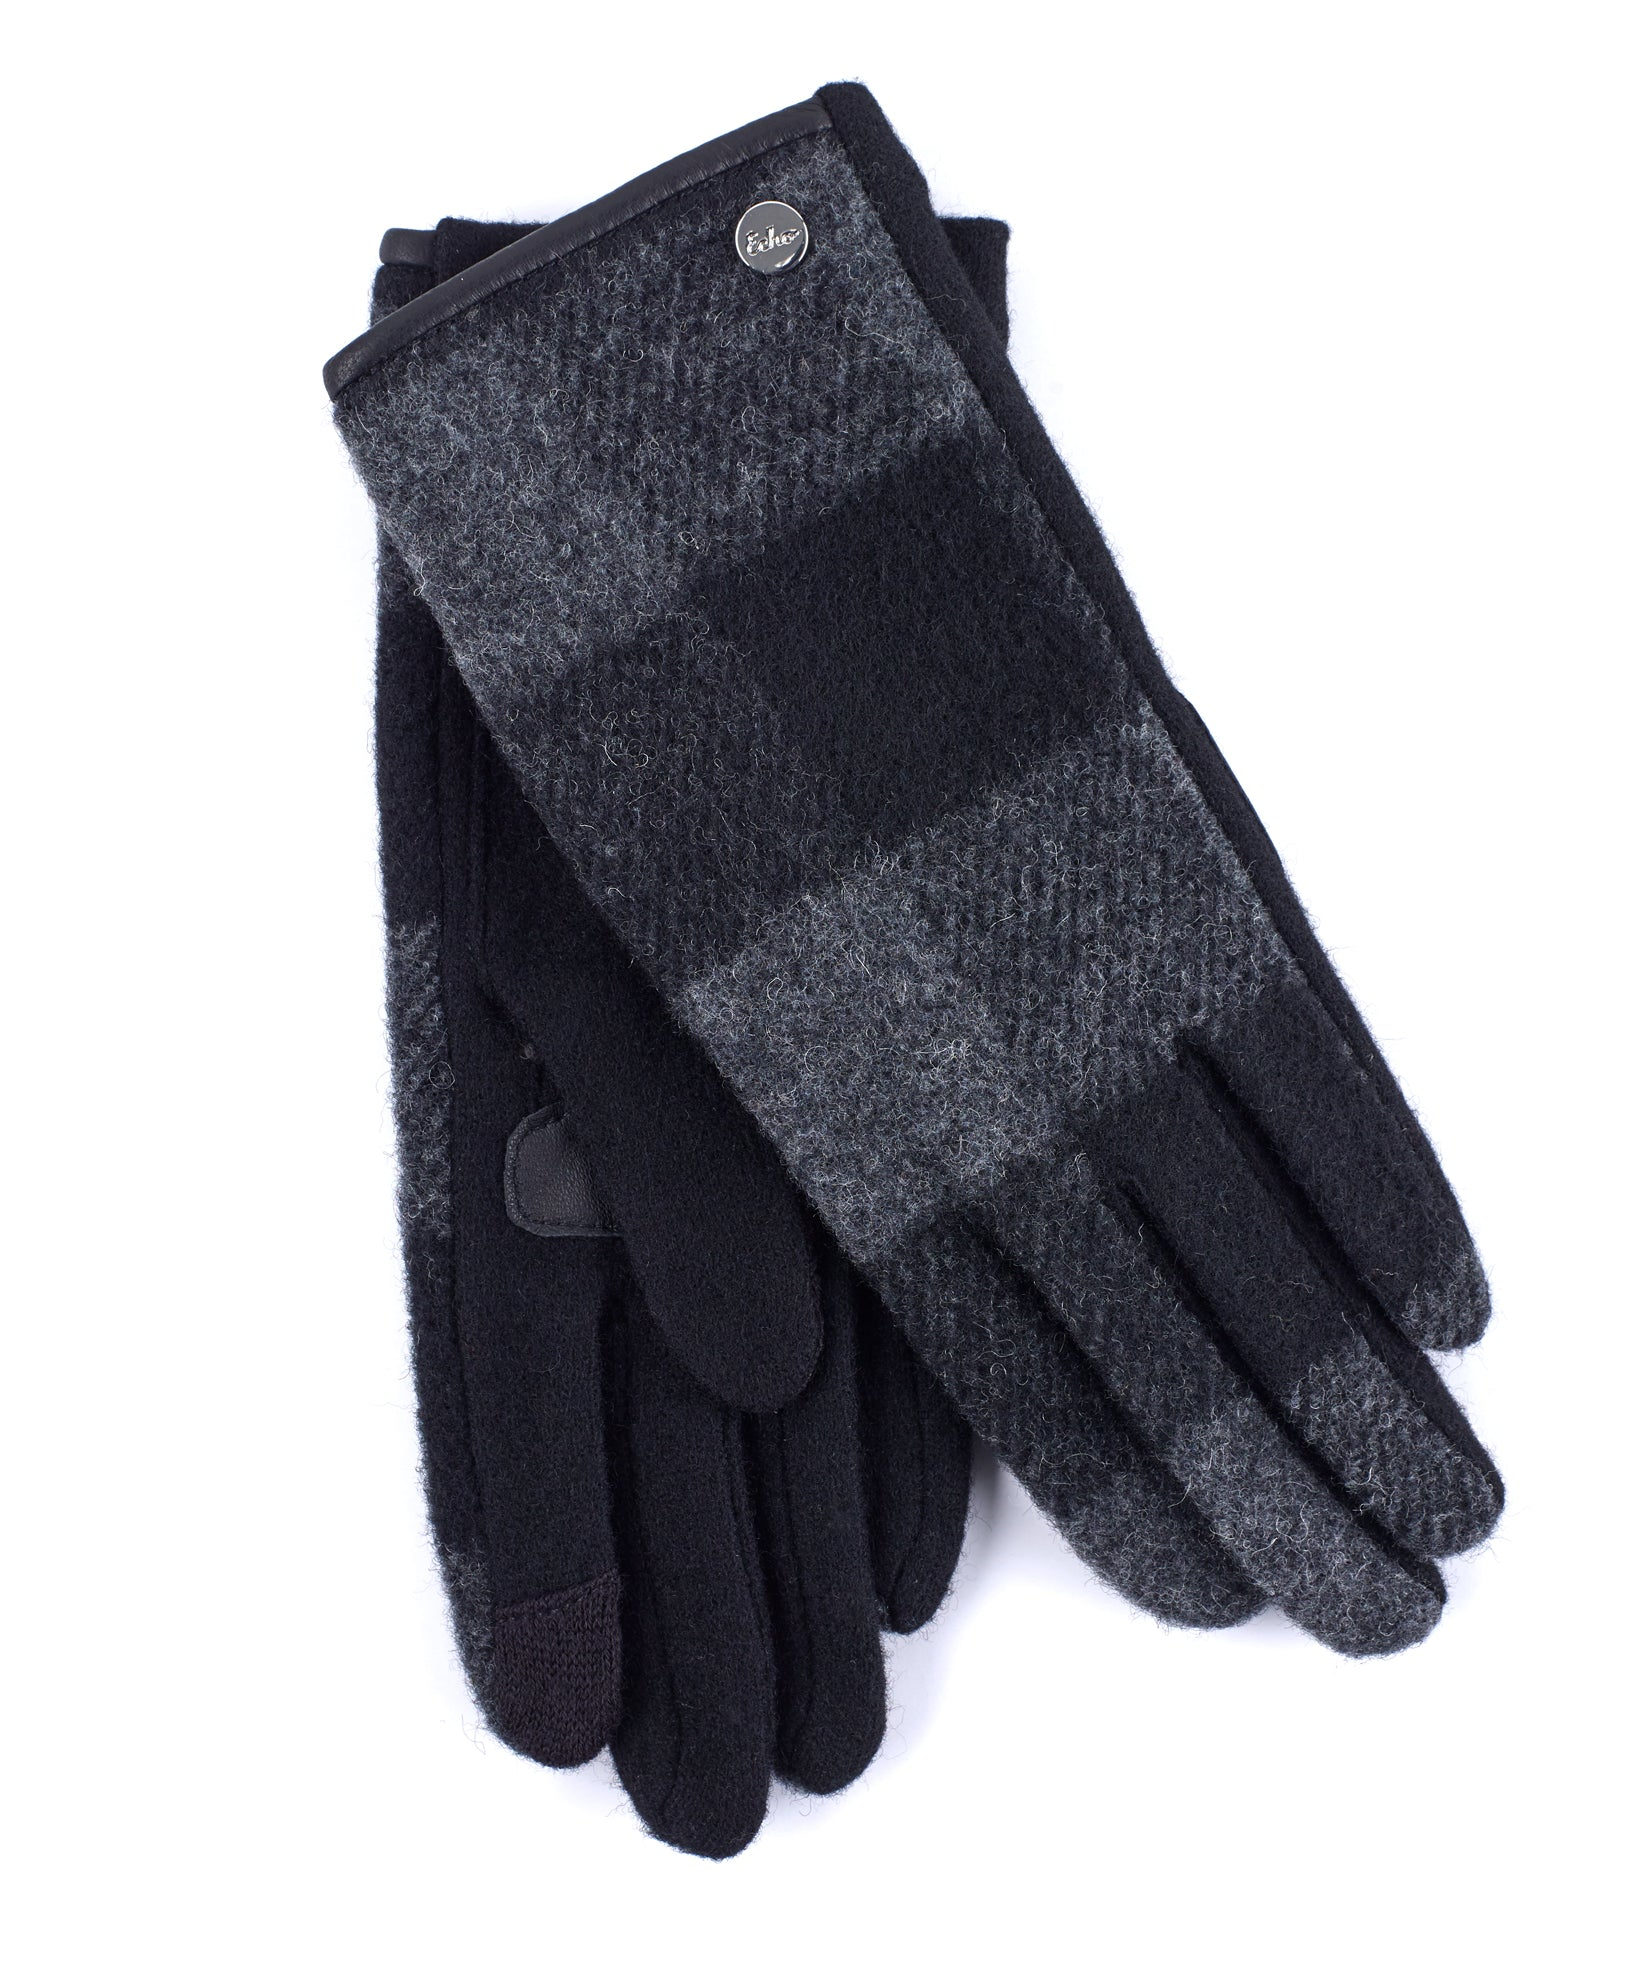 Black - Buffalo Plaid Glove